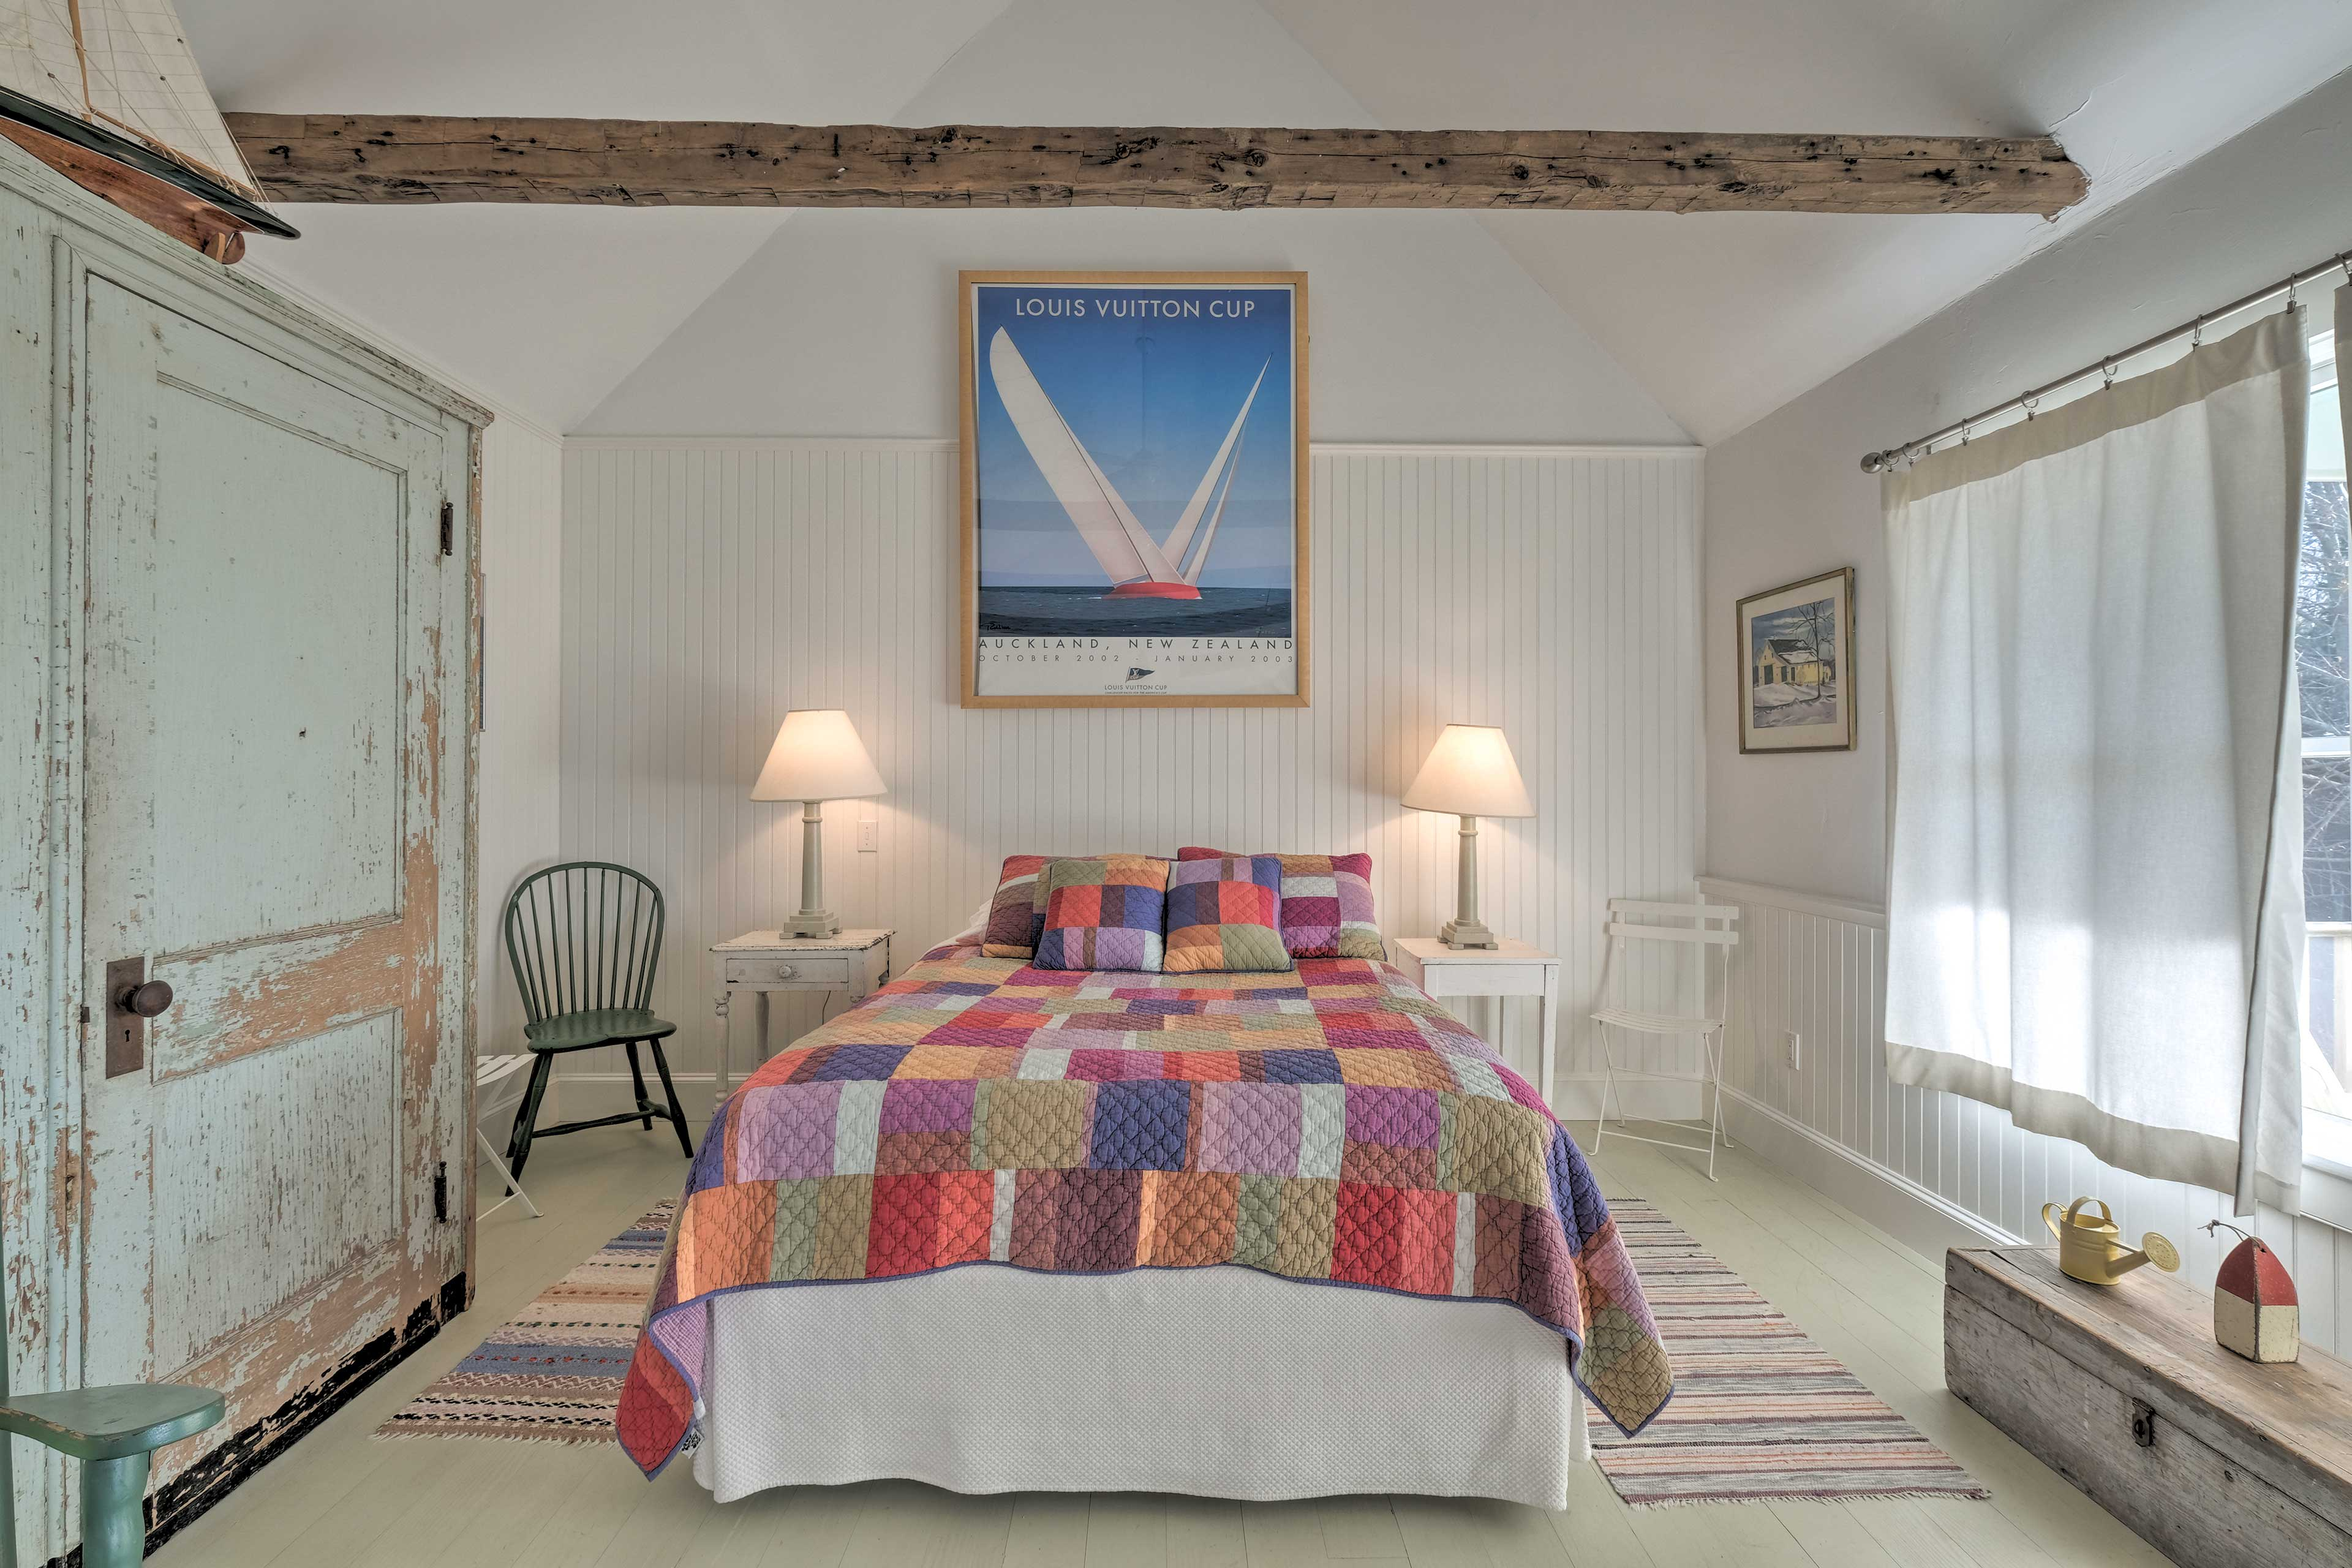 Many restful nights await on this queen bed.